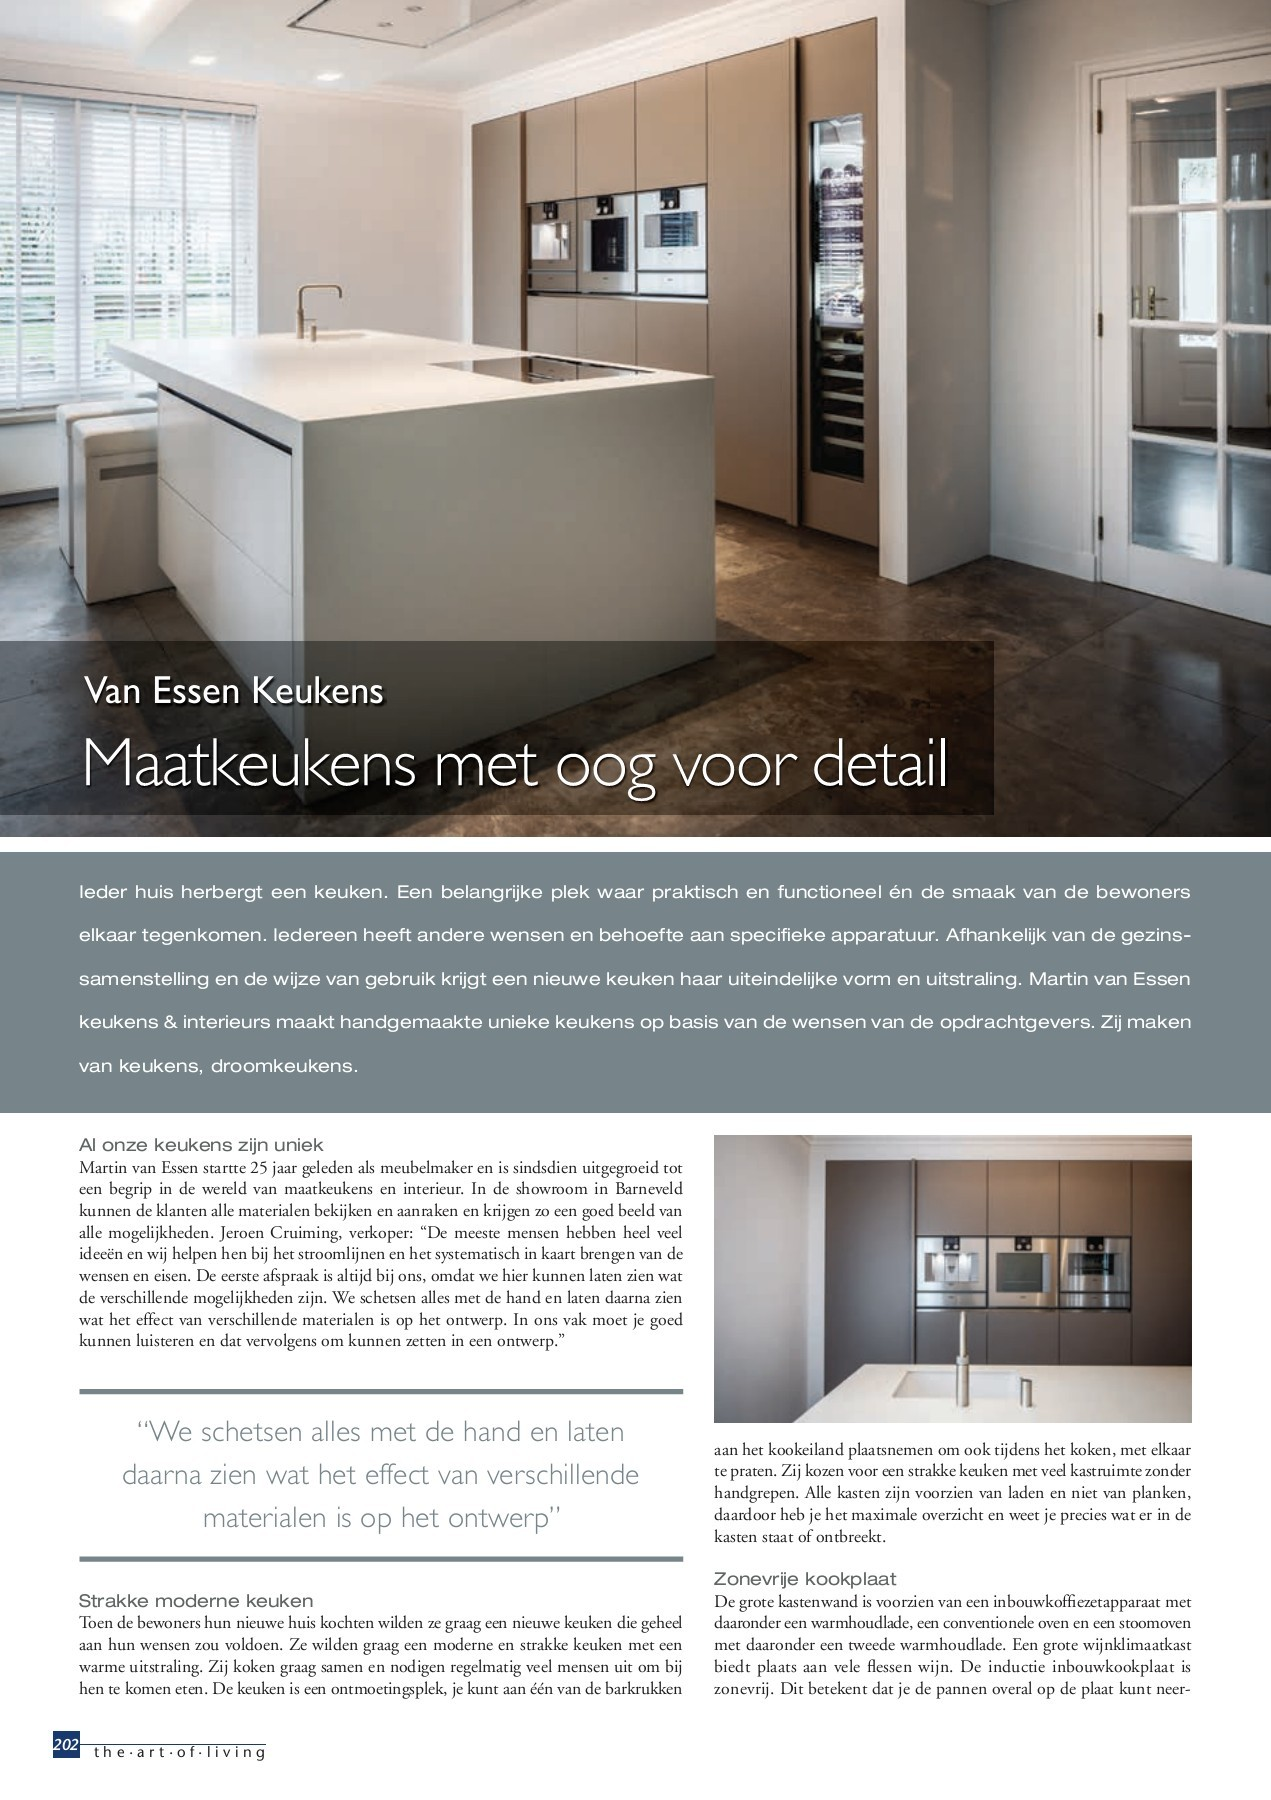 Goedkope Keukens Ter Aar The Art Of Living Nummer 2 2018 Nl Pages 201 250 Text